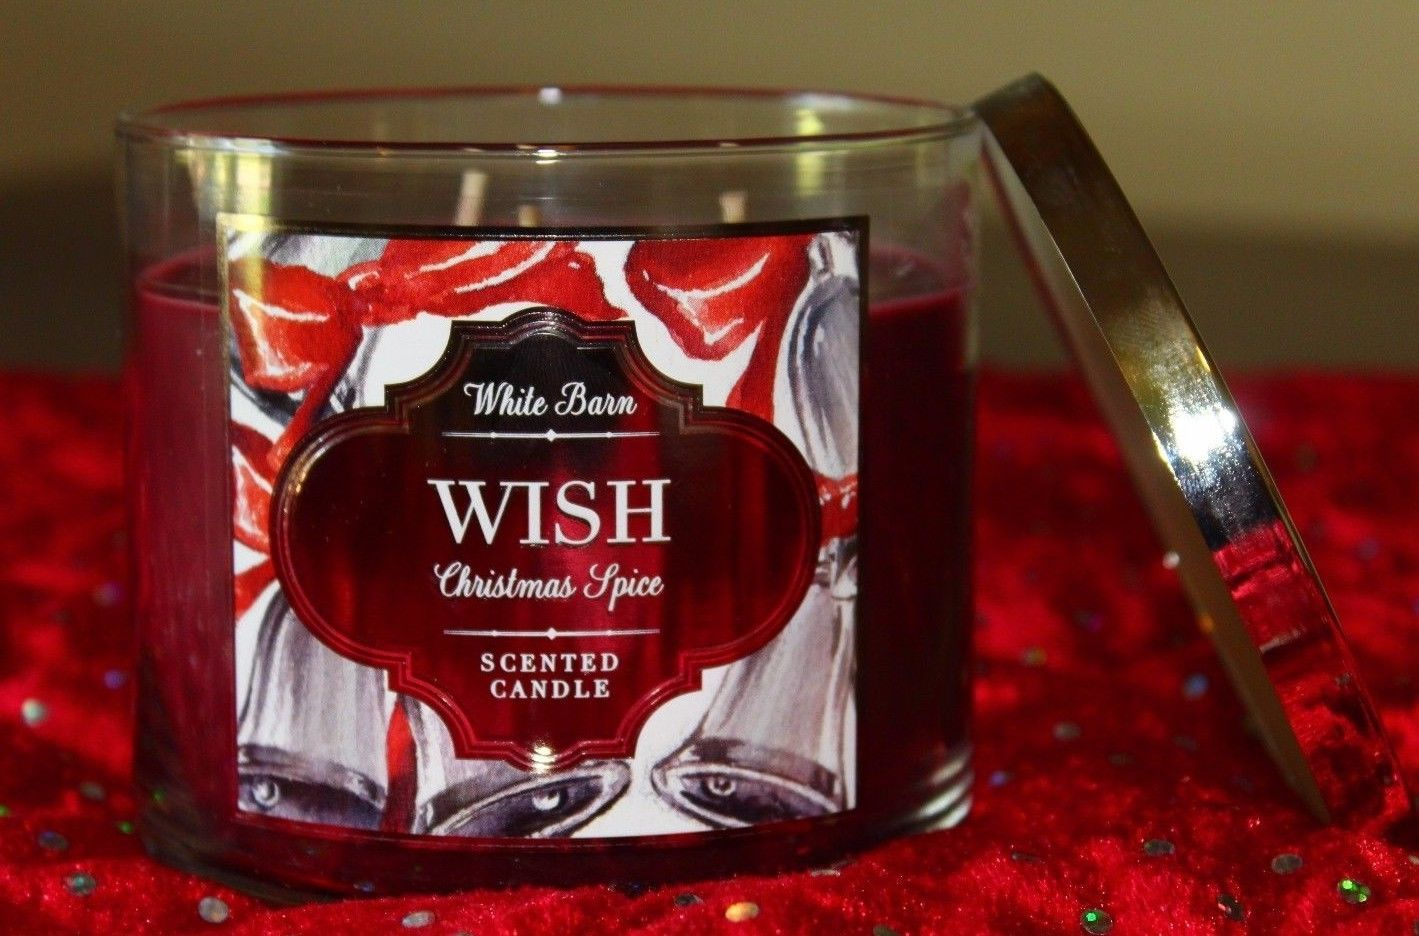 Bath and body works holiday scents - Inside The Page Bath Body Works Holiday Test Candle List Photos 2015